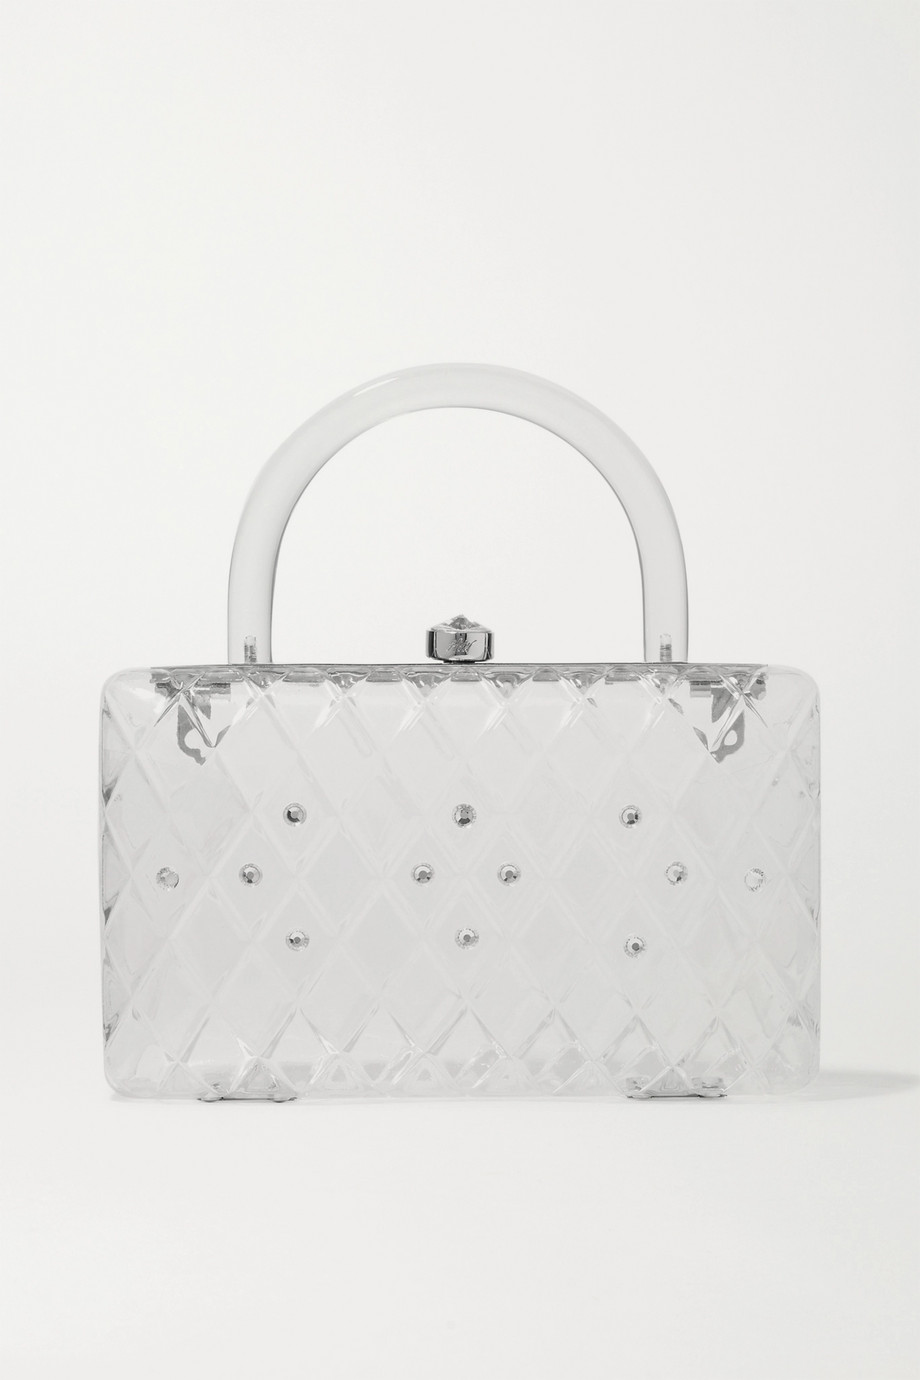 HVN Rio crystal-embellished acrylic tote